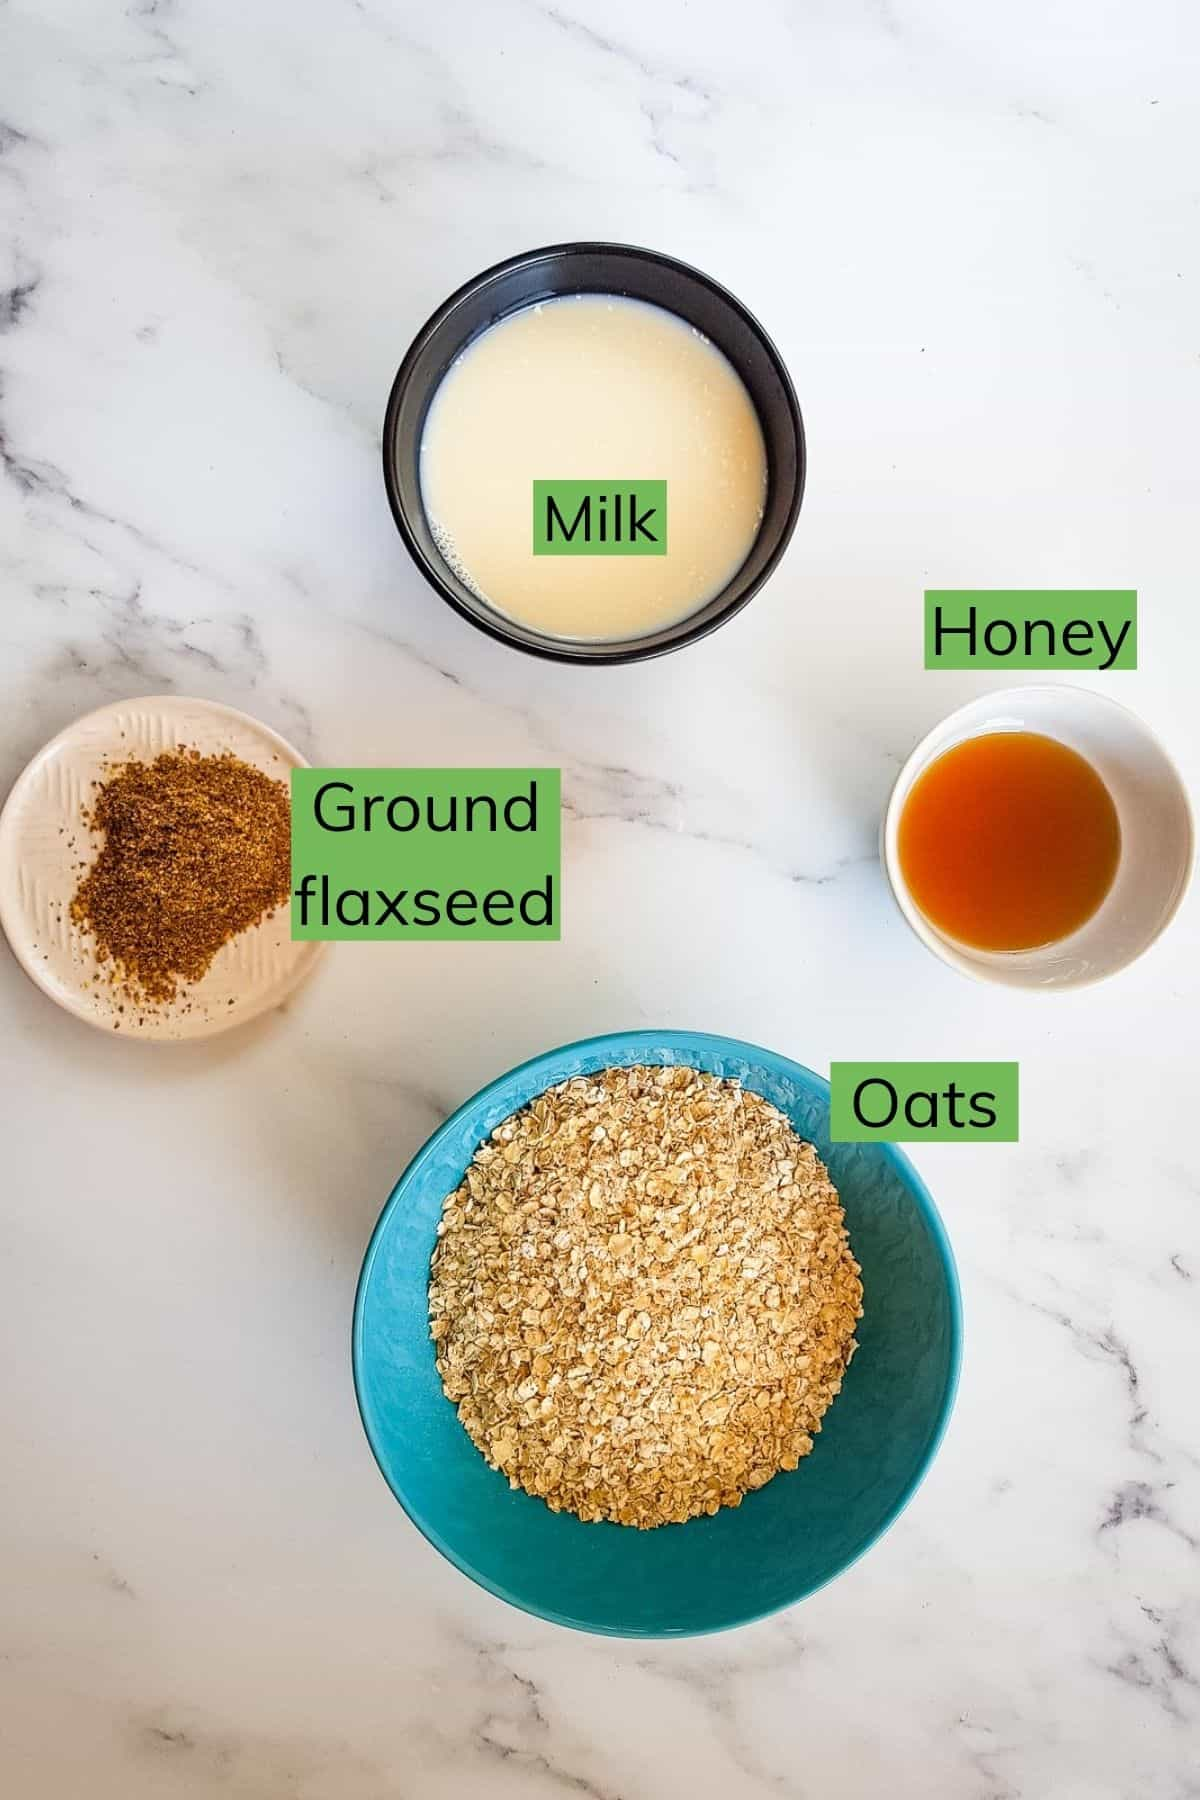 Ingredients for flaxseed oatmeal laid out on a table.